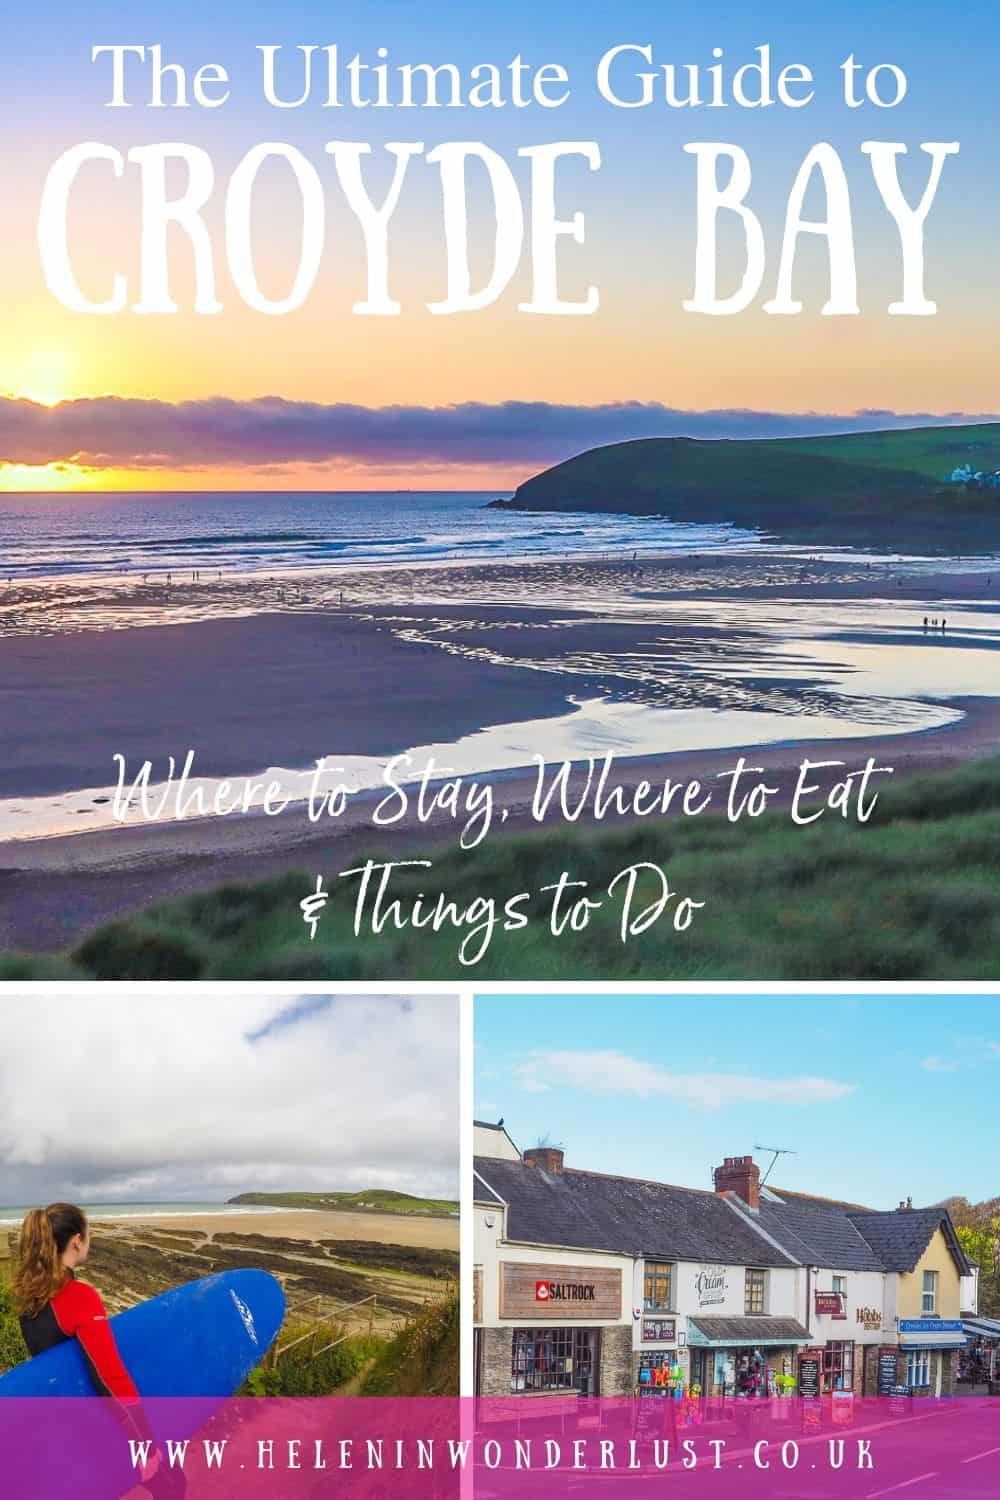 Planning to visit Croyde in North Devon? Here's my ultimate guide to Croyde Bay, including where to stay, where to eat and things to do!